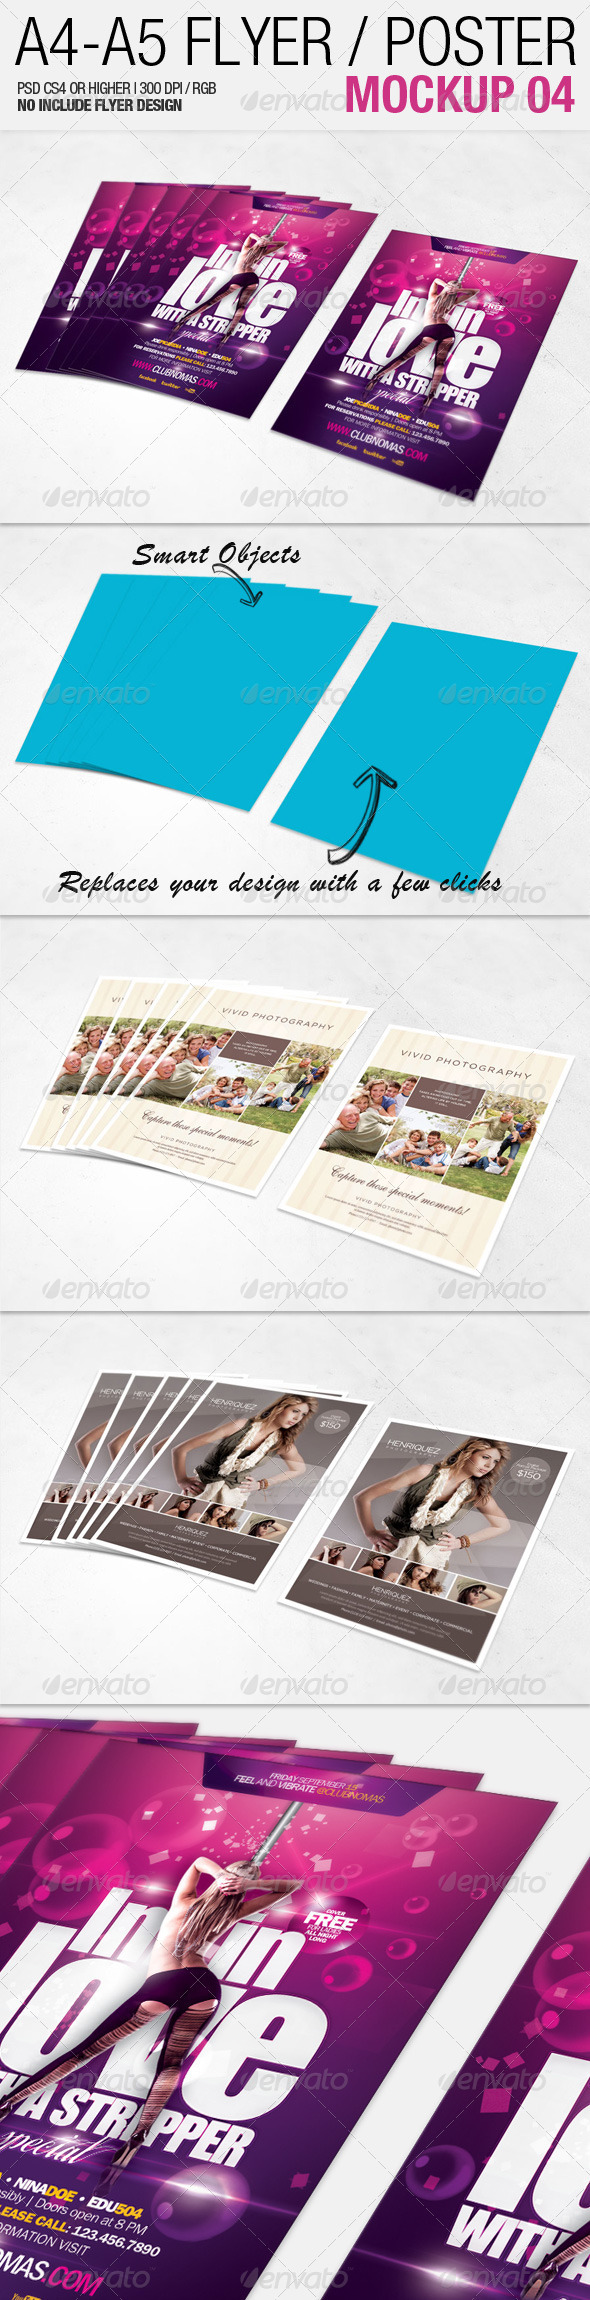 GraphicRiver A4 A5 Flyer Mockup 04 2557645